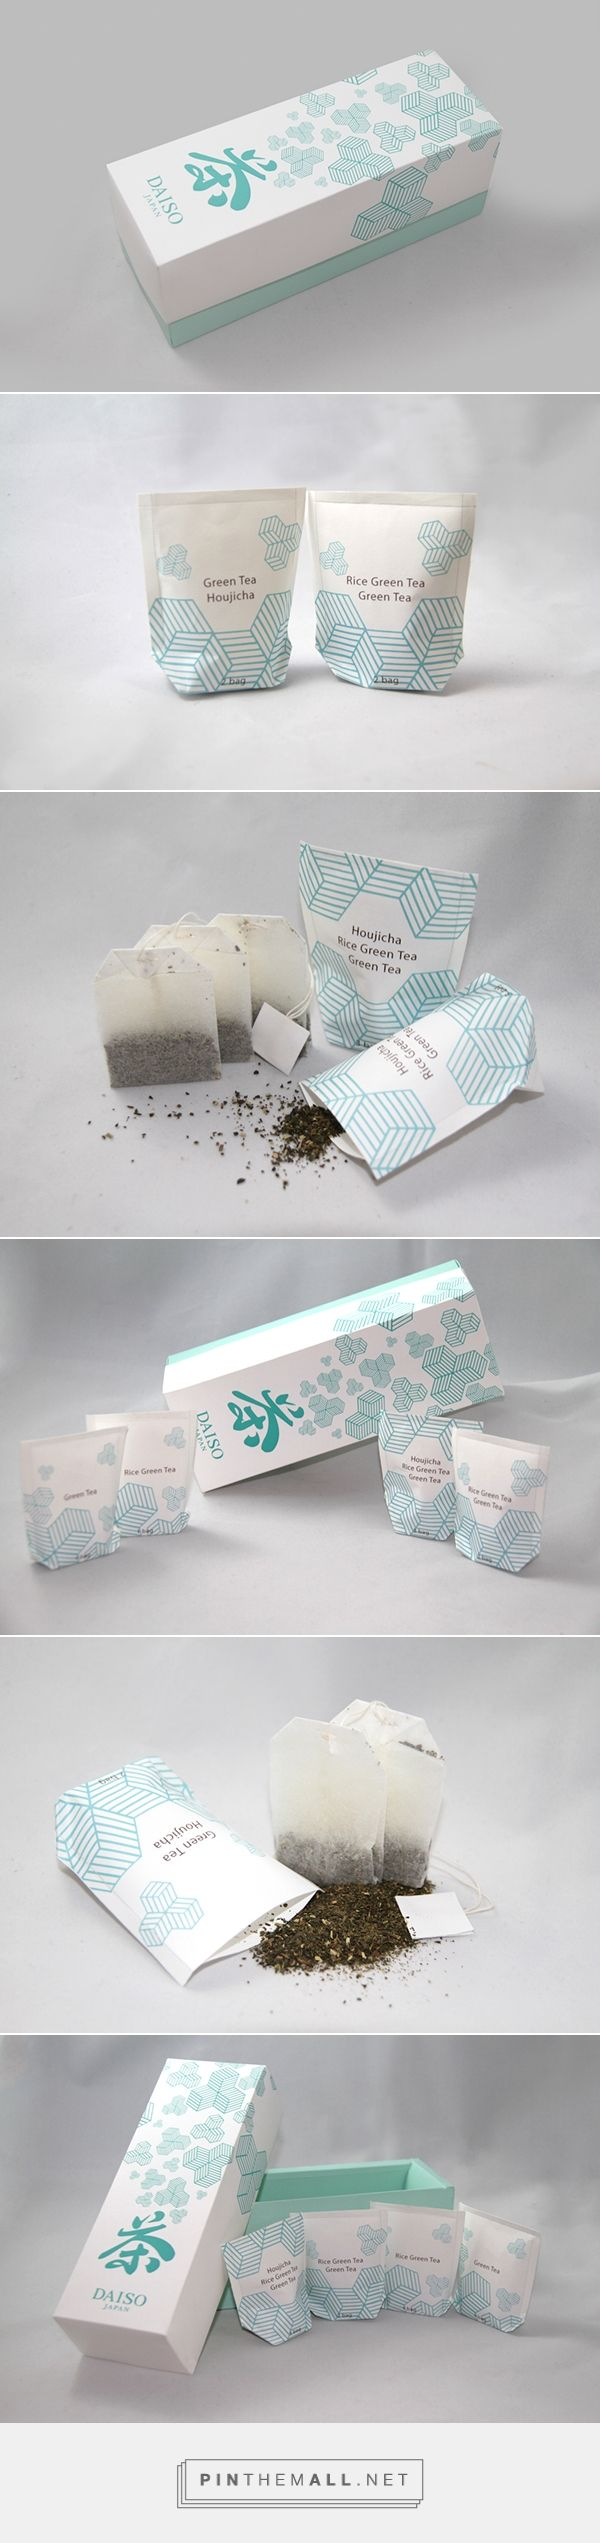 Tea Gift Set Packaging on Behance via Wilona Wirianta curated by Packaging Diva PD. A packaging design project.